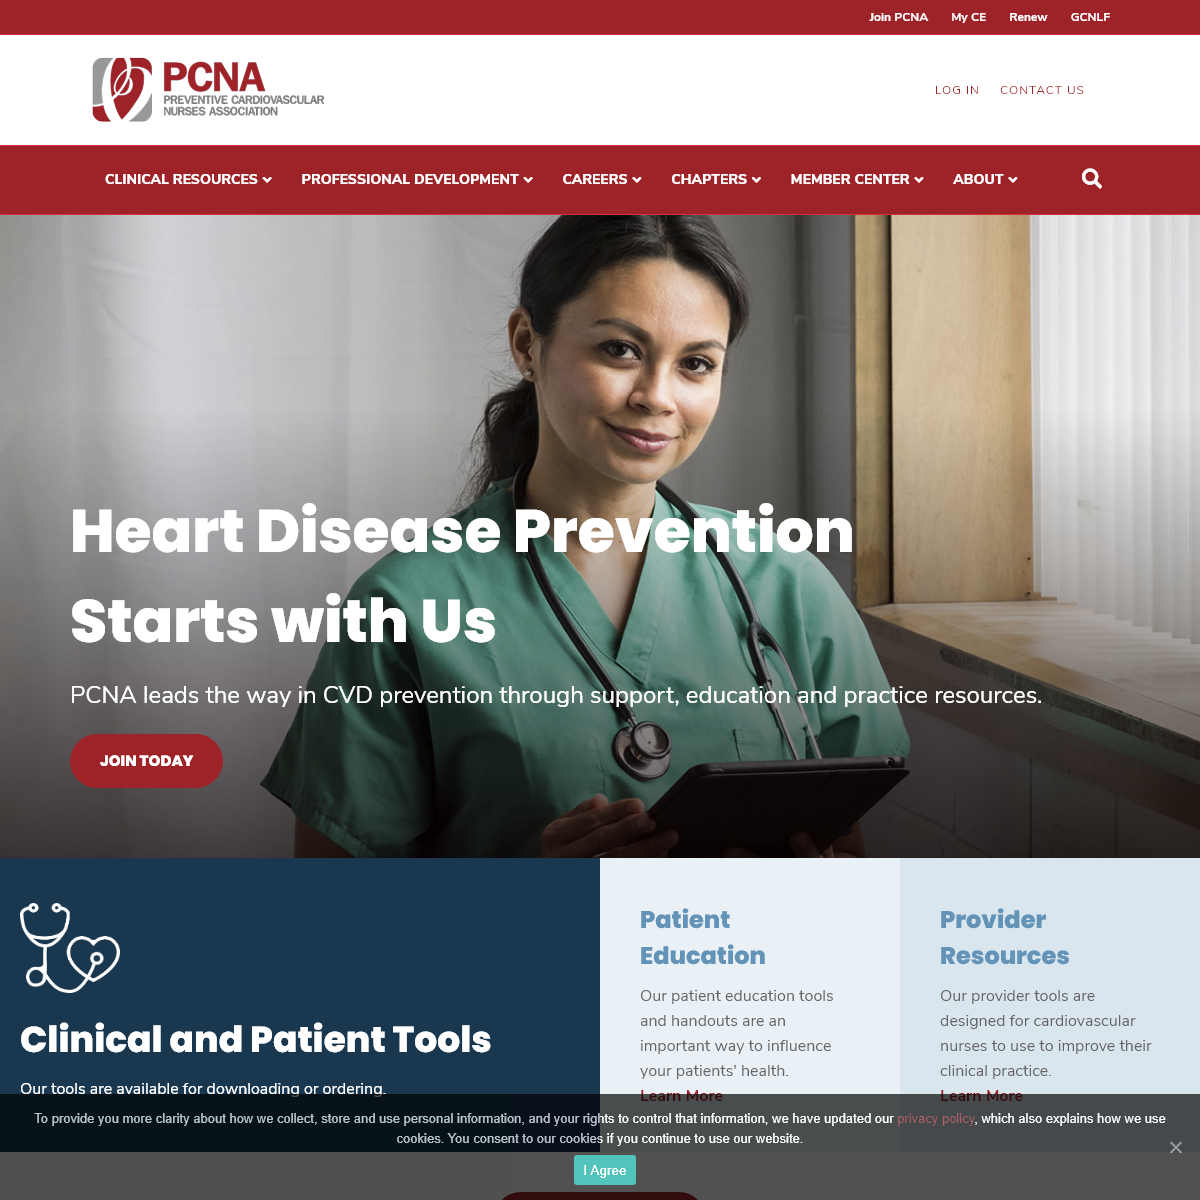 PCNA - Preventive Cardiovascular Nurses Association